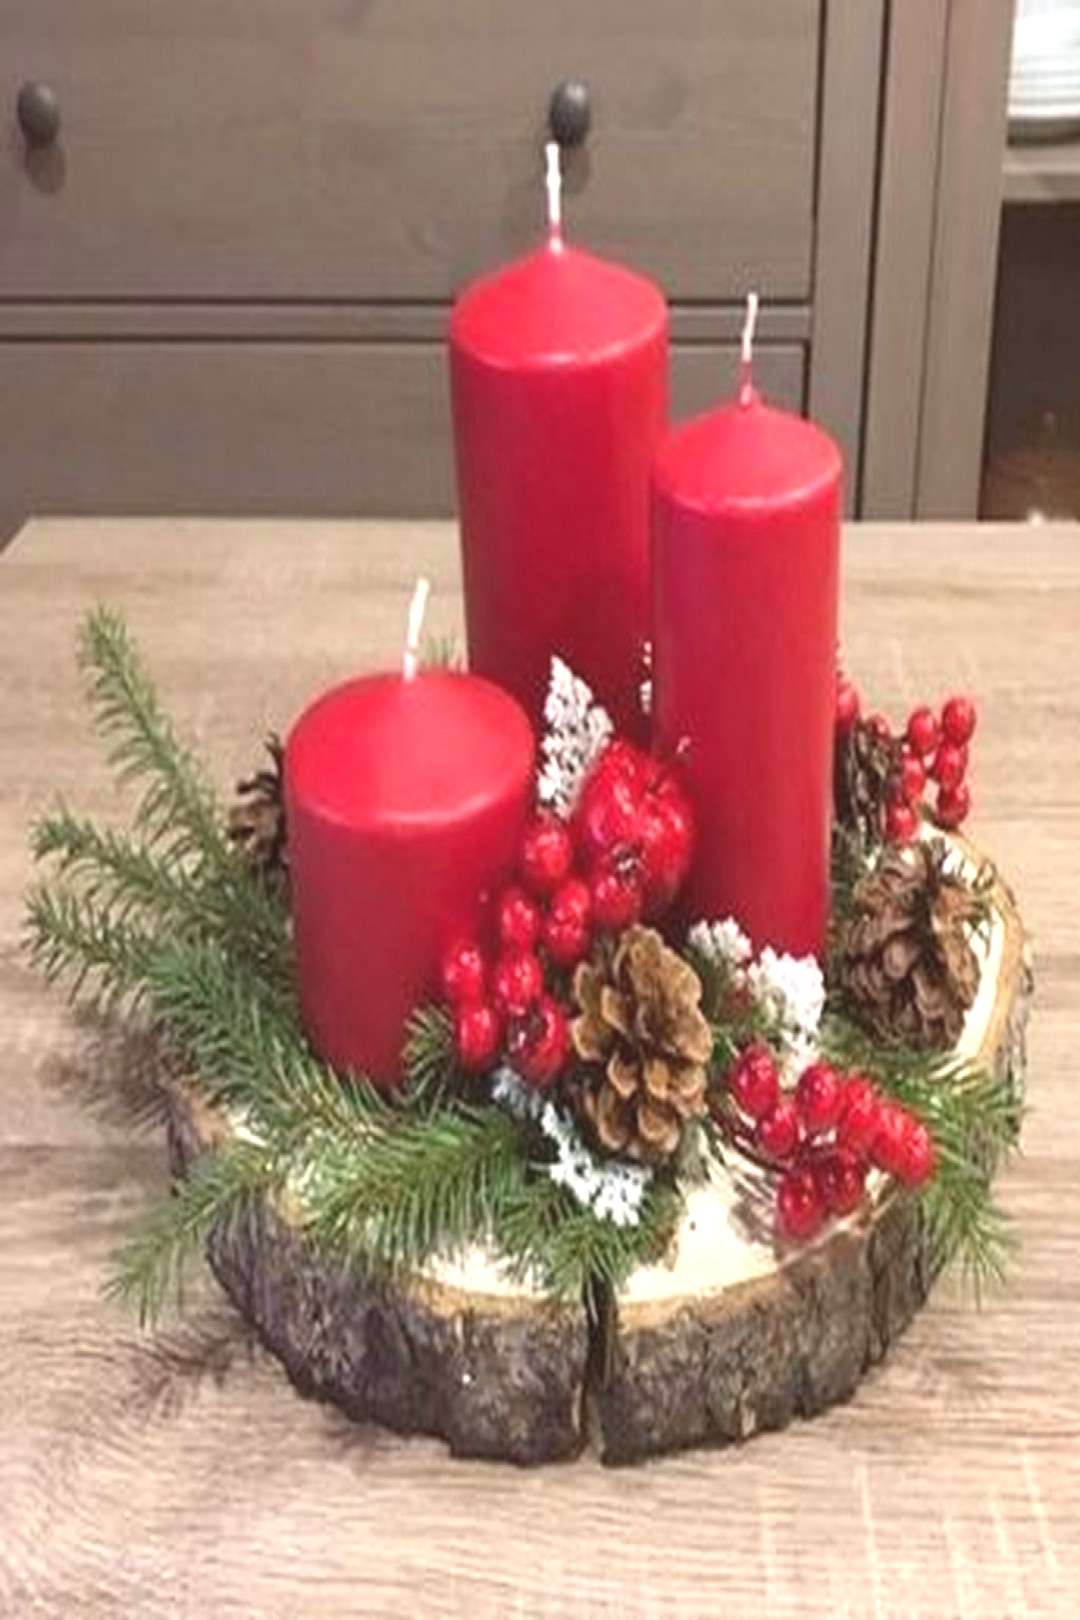 32 Stunning DIY Christmas Theme Home Decorations 32 Stunning DIY Christmas Theme Home Decorations